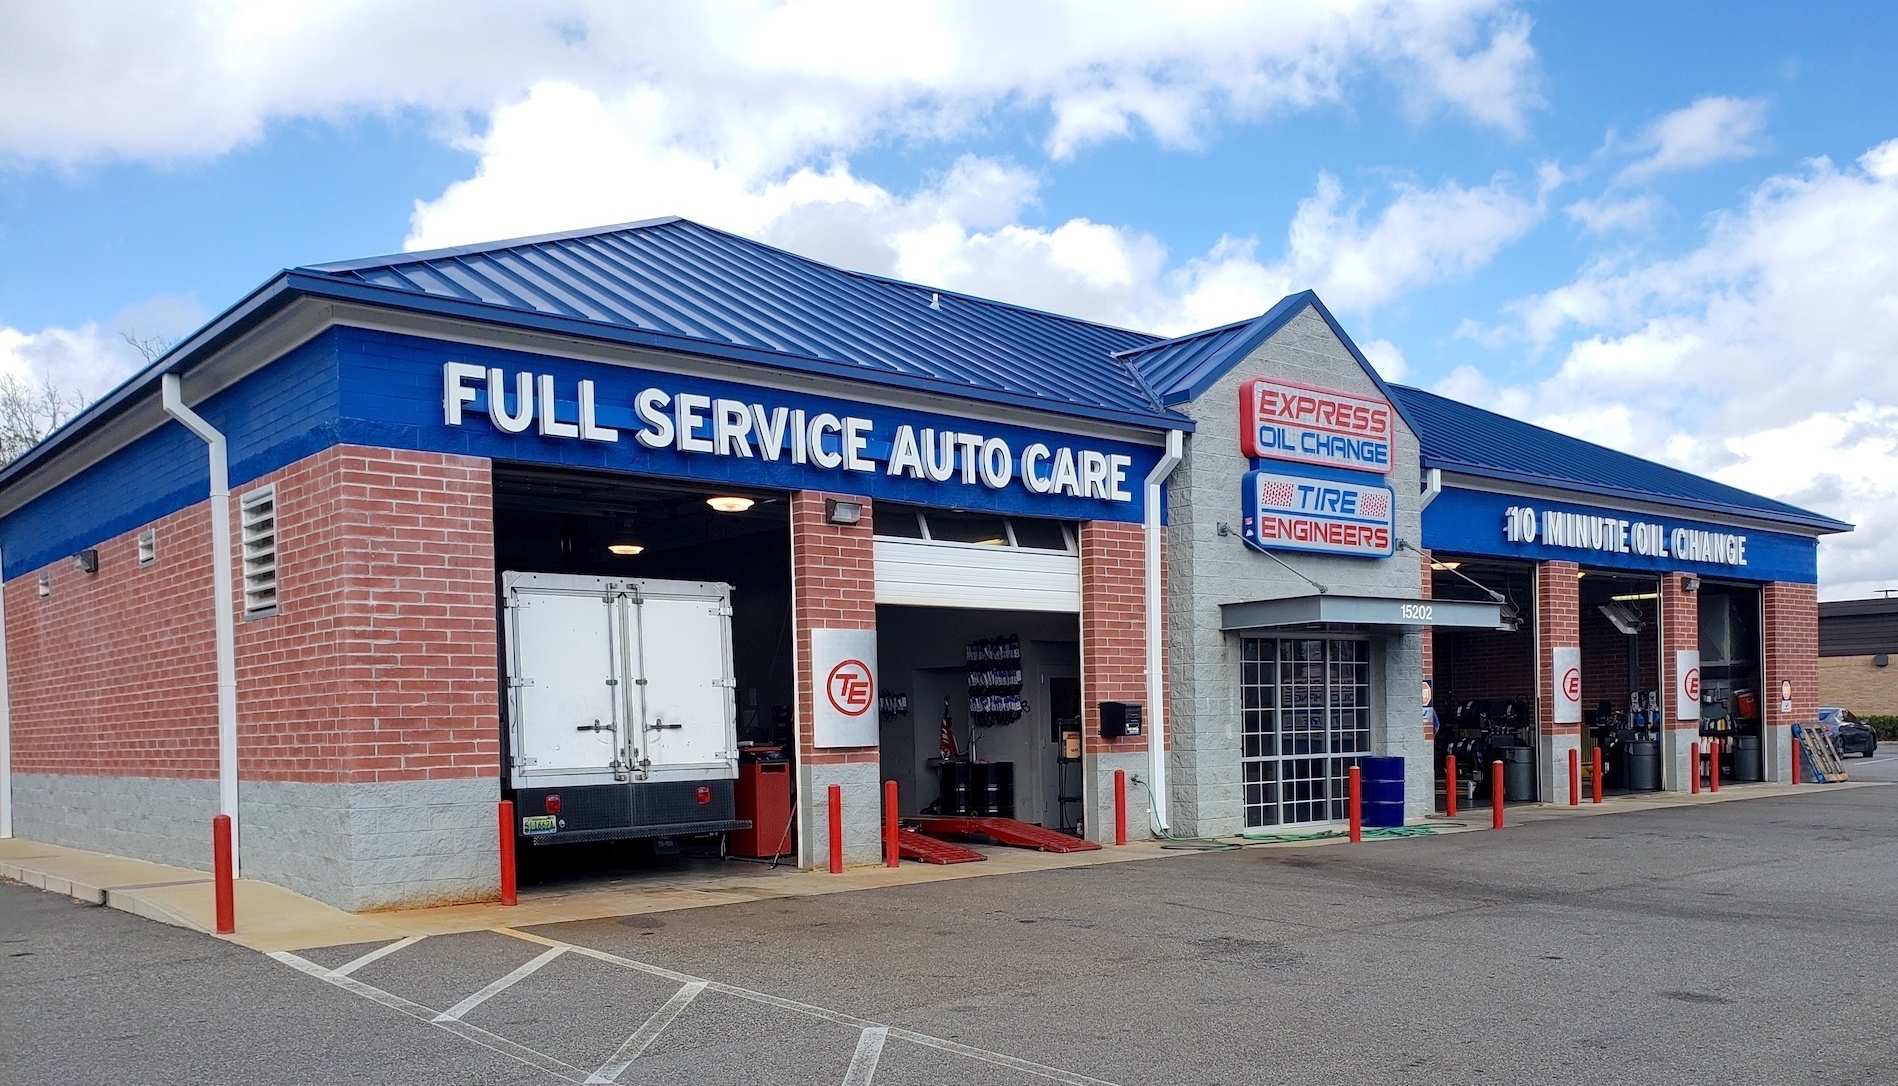 Express Oil Change & Tire Engineers at Jacksonville, FL - River City store